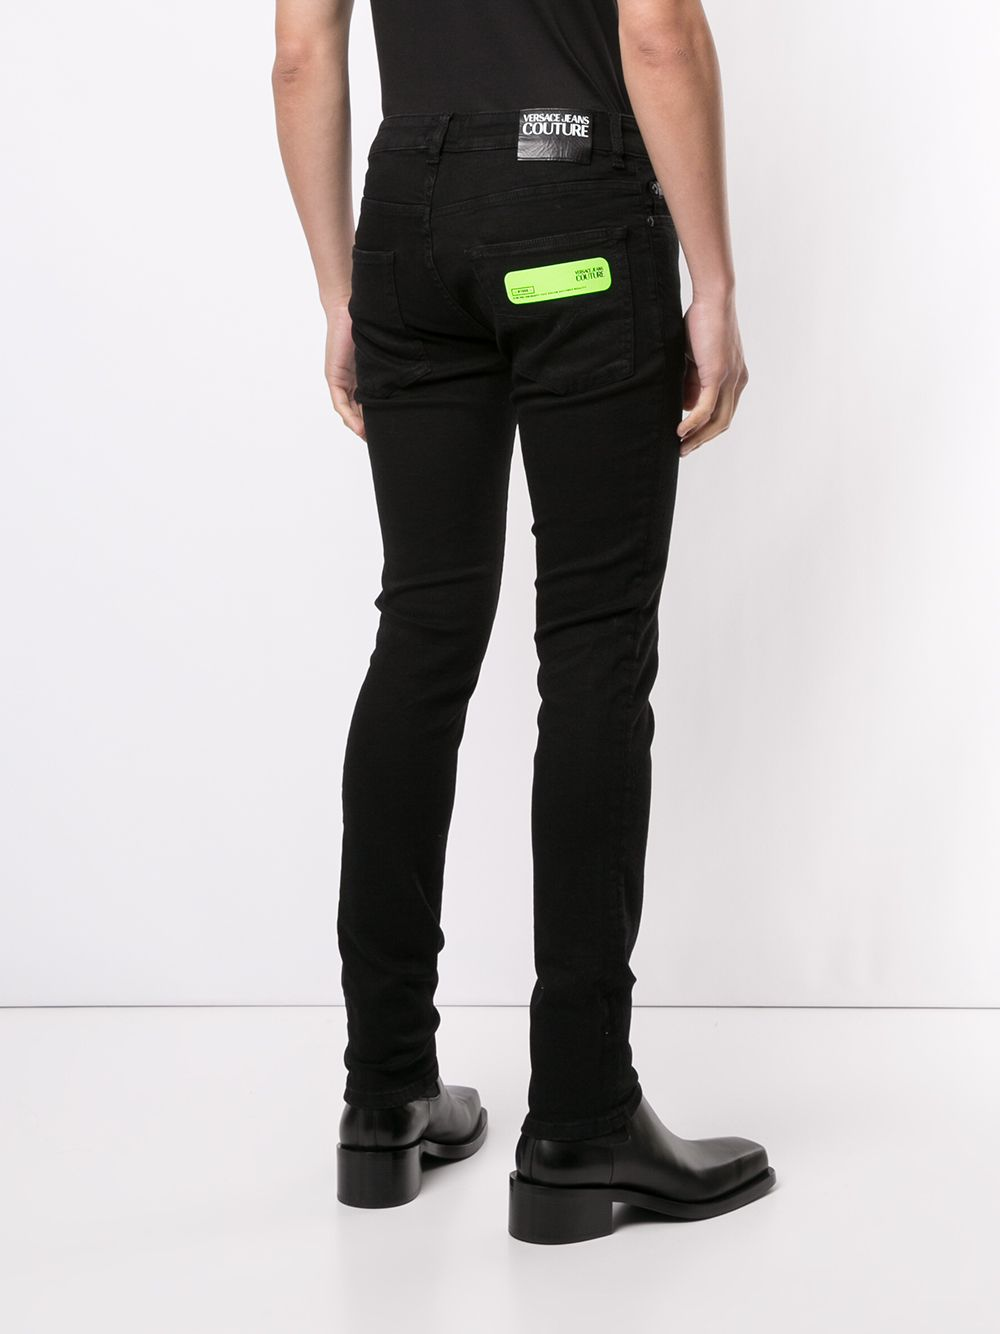 VERSACE JEANS COUTURE |  | A2.GZA0K8.60366899